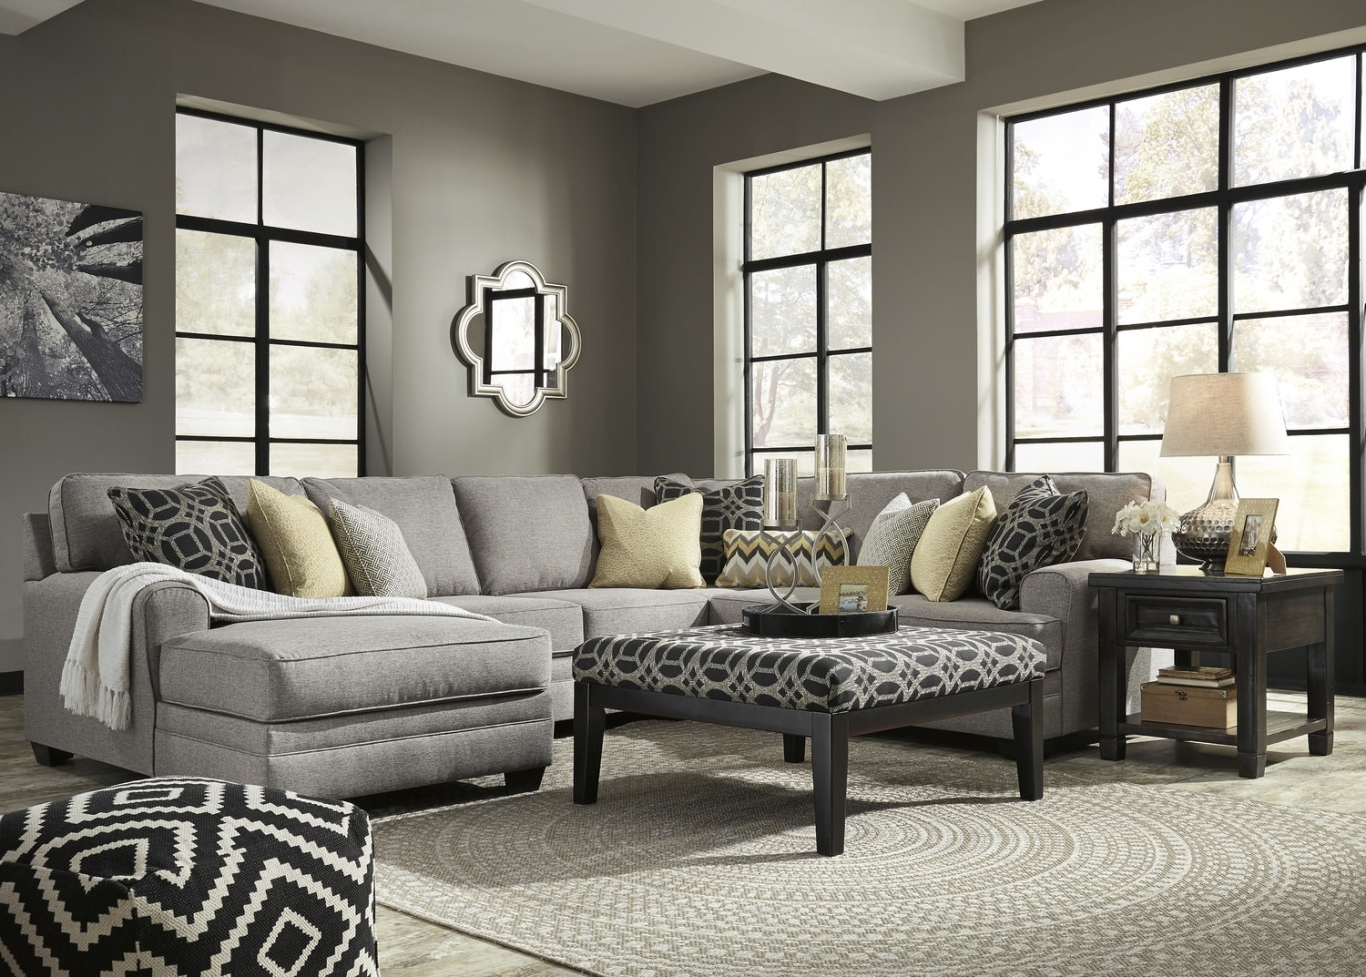 St Cloud Mn Sectional Sofas In Popular Hom Furniture St Cloud Mn (View 7 of 20)